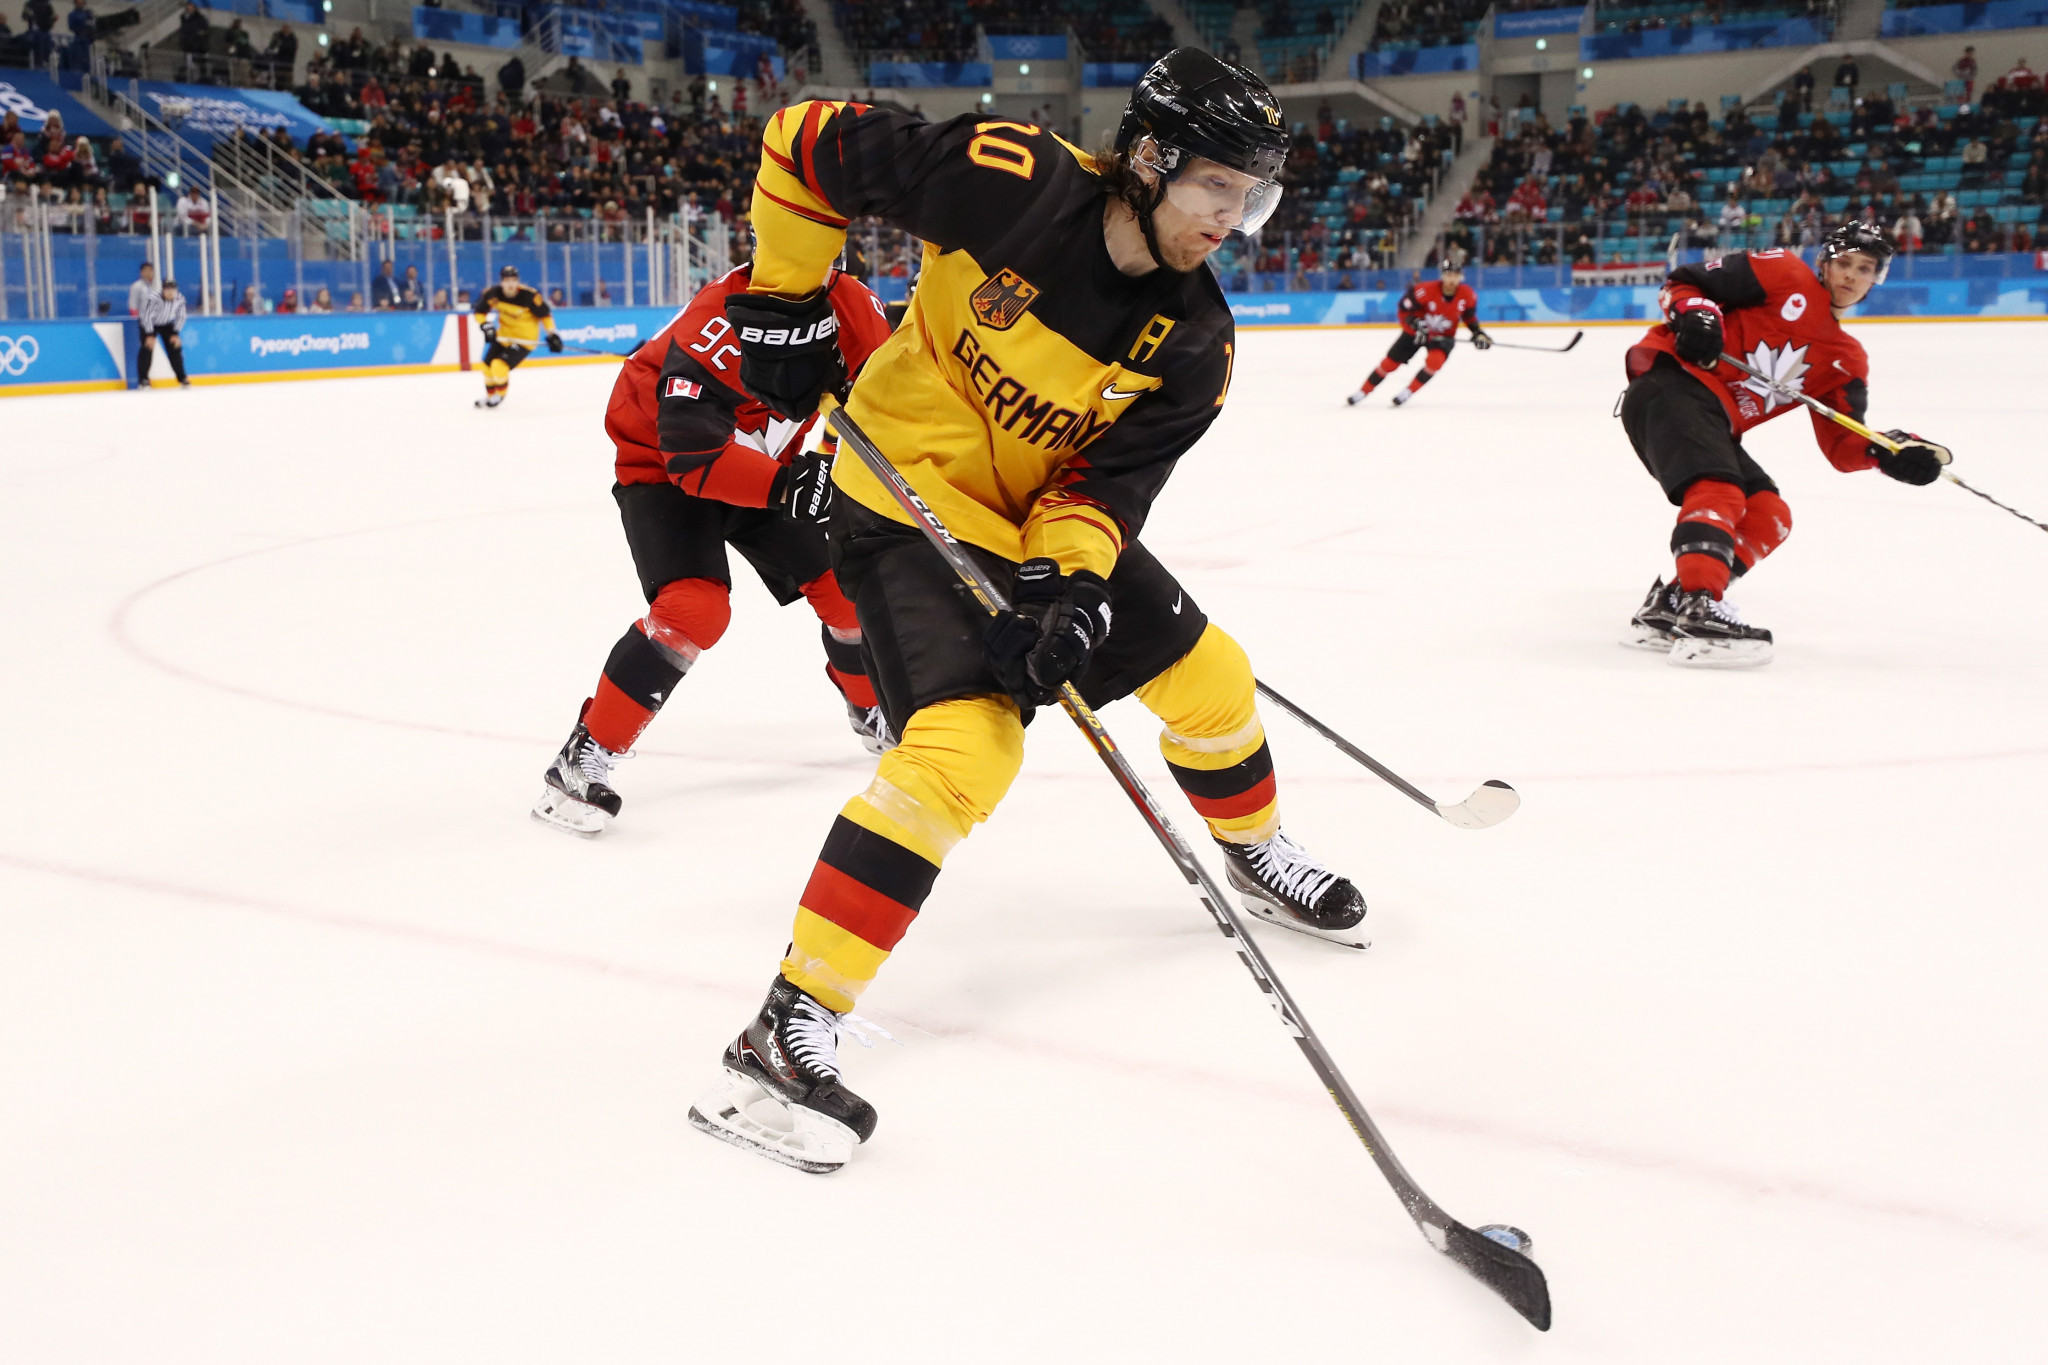 german ice hockey